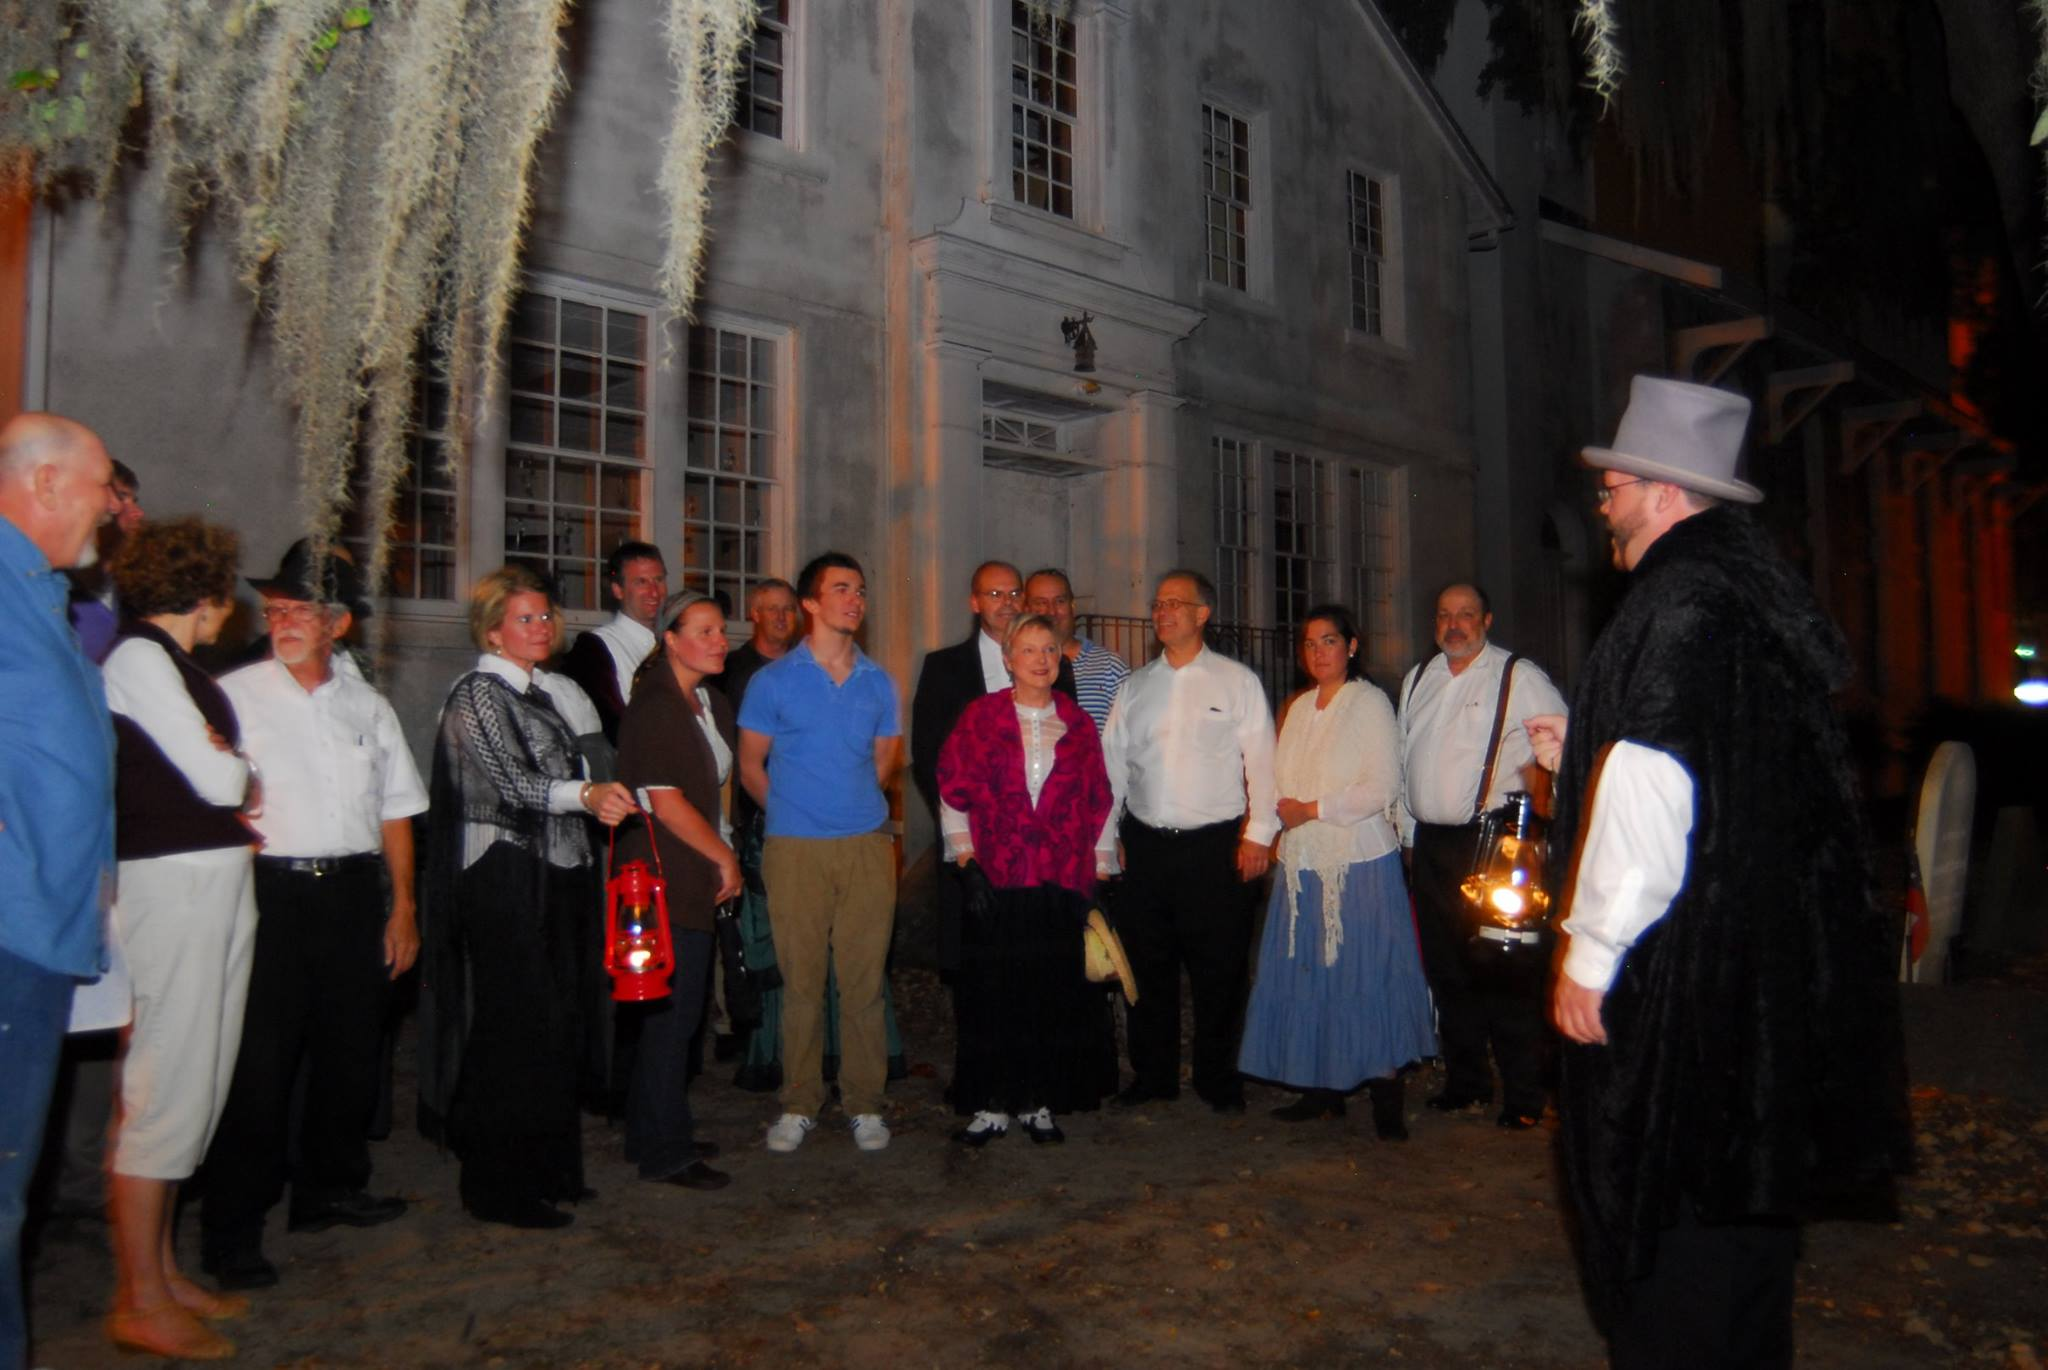 This is one of the stops at the Conway Ghost Walk (we aren't in this photo). People dressed in 1700's clothing tell spooky stories (photo courtesy of the Conway Downtown Alive Facebook page).